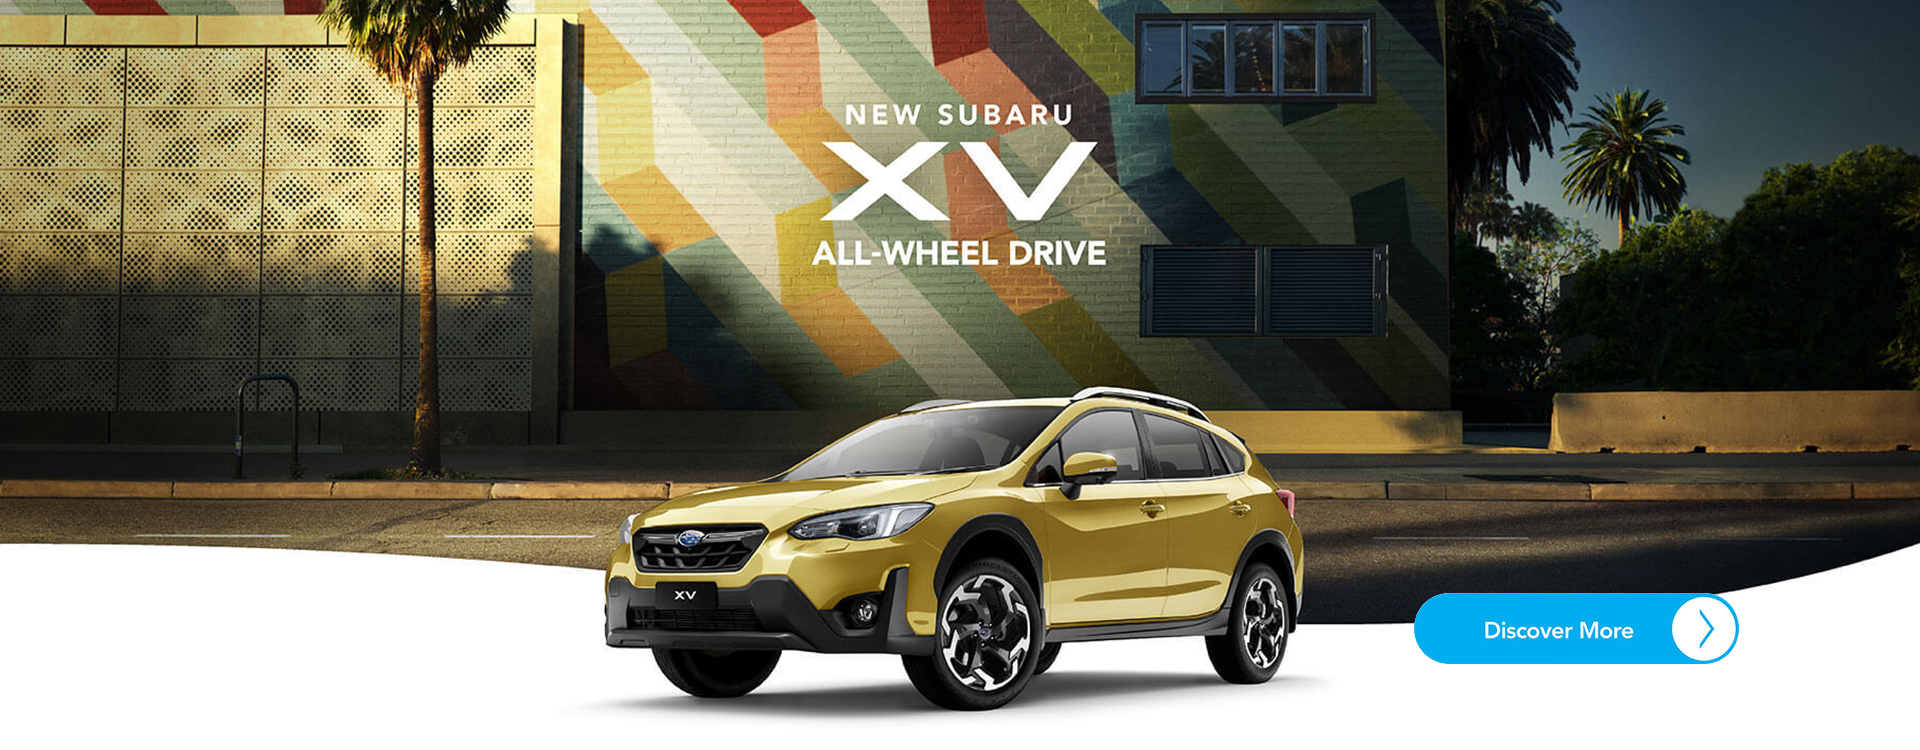 New Subaru XV. Take fun to the next level with the newly imagined 2021 Subaru XV AWD, the original and multi award winning compact SUV.